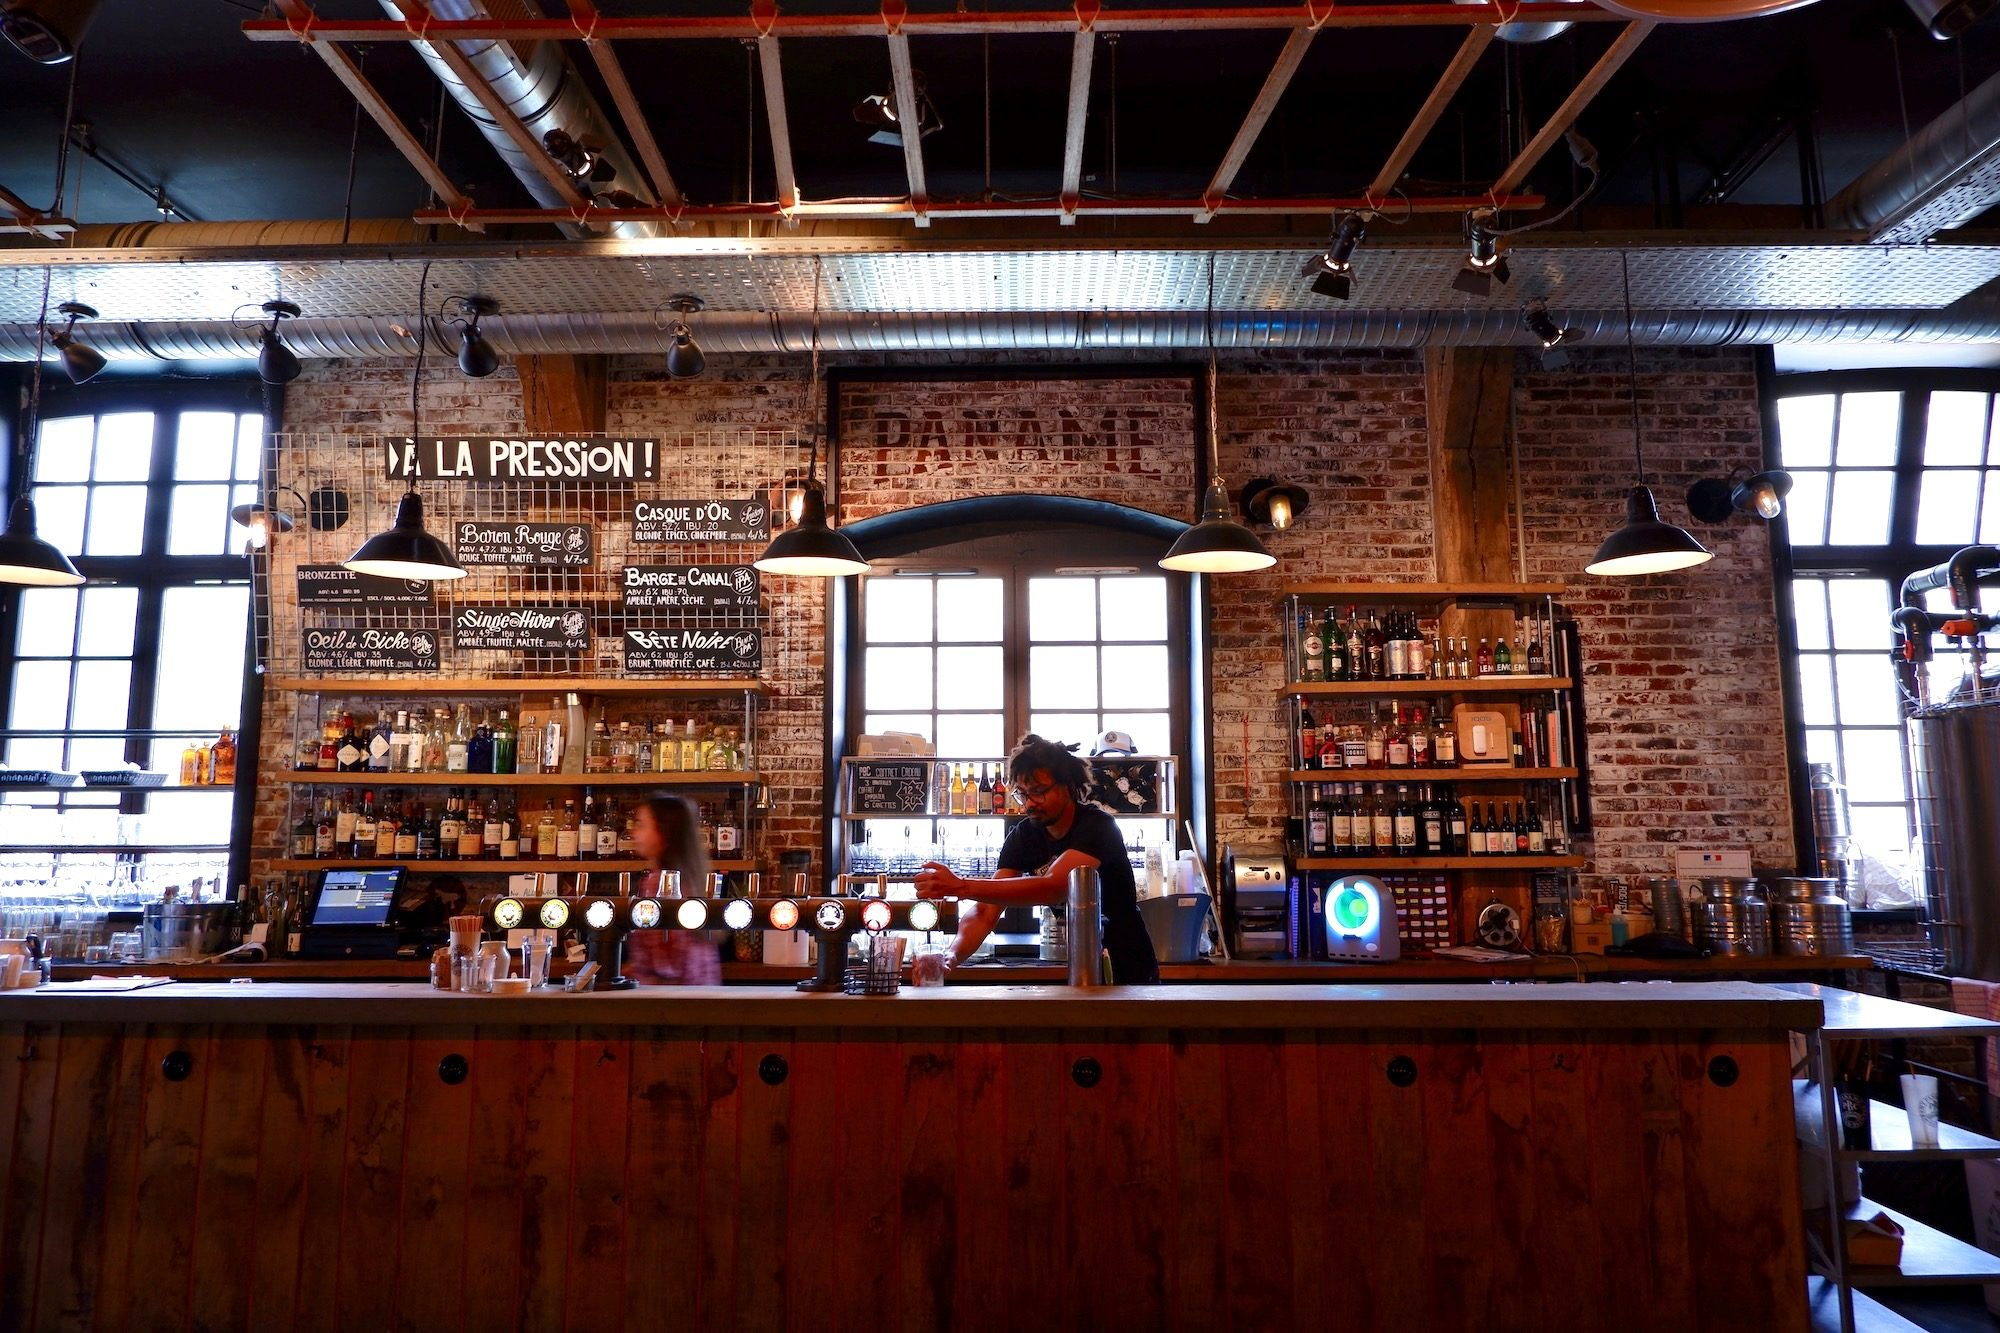 The counter of Paname Brewing Company, the popular craft beer bar on the canal in Paris.